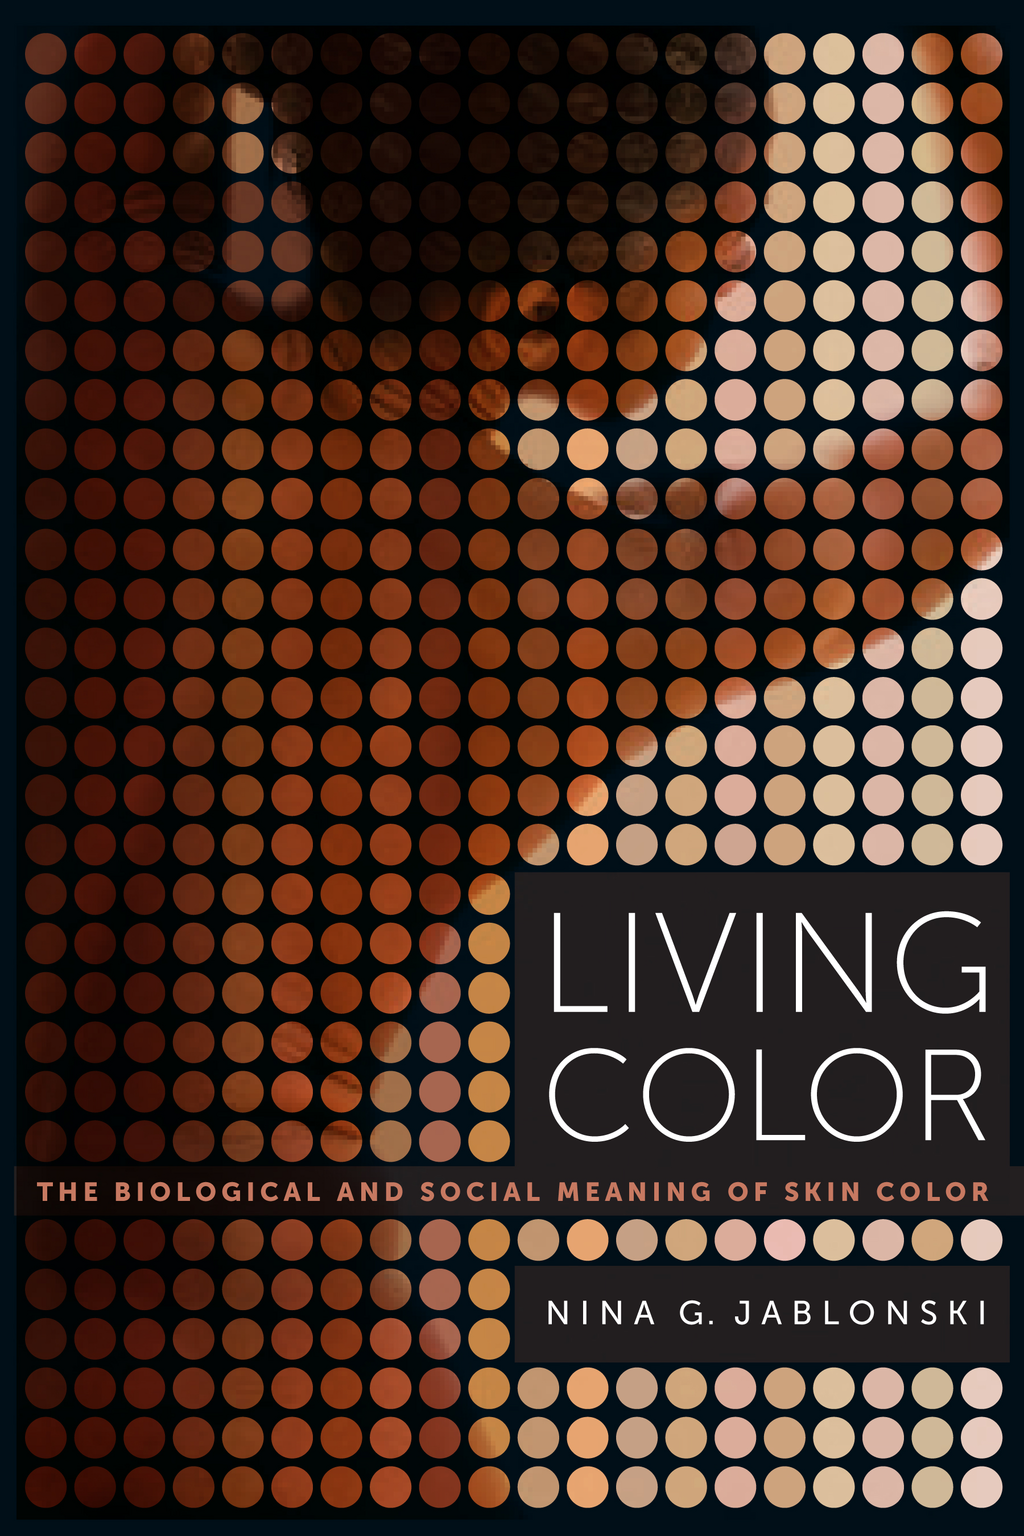 Living Color By: Nina G. Jablonski